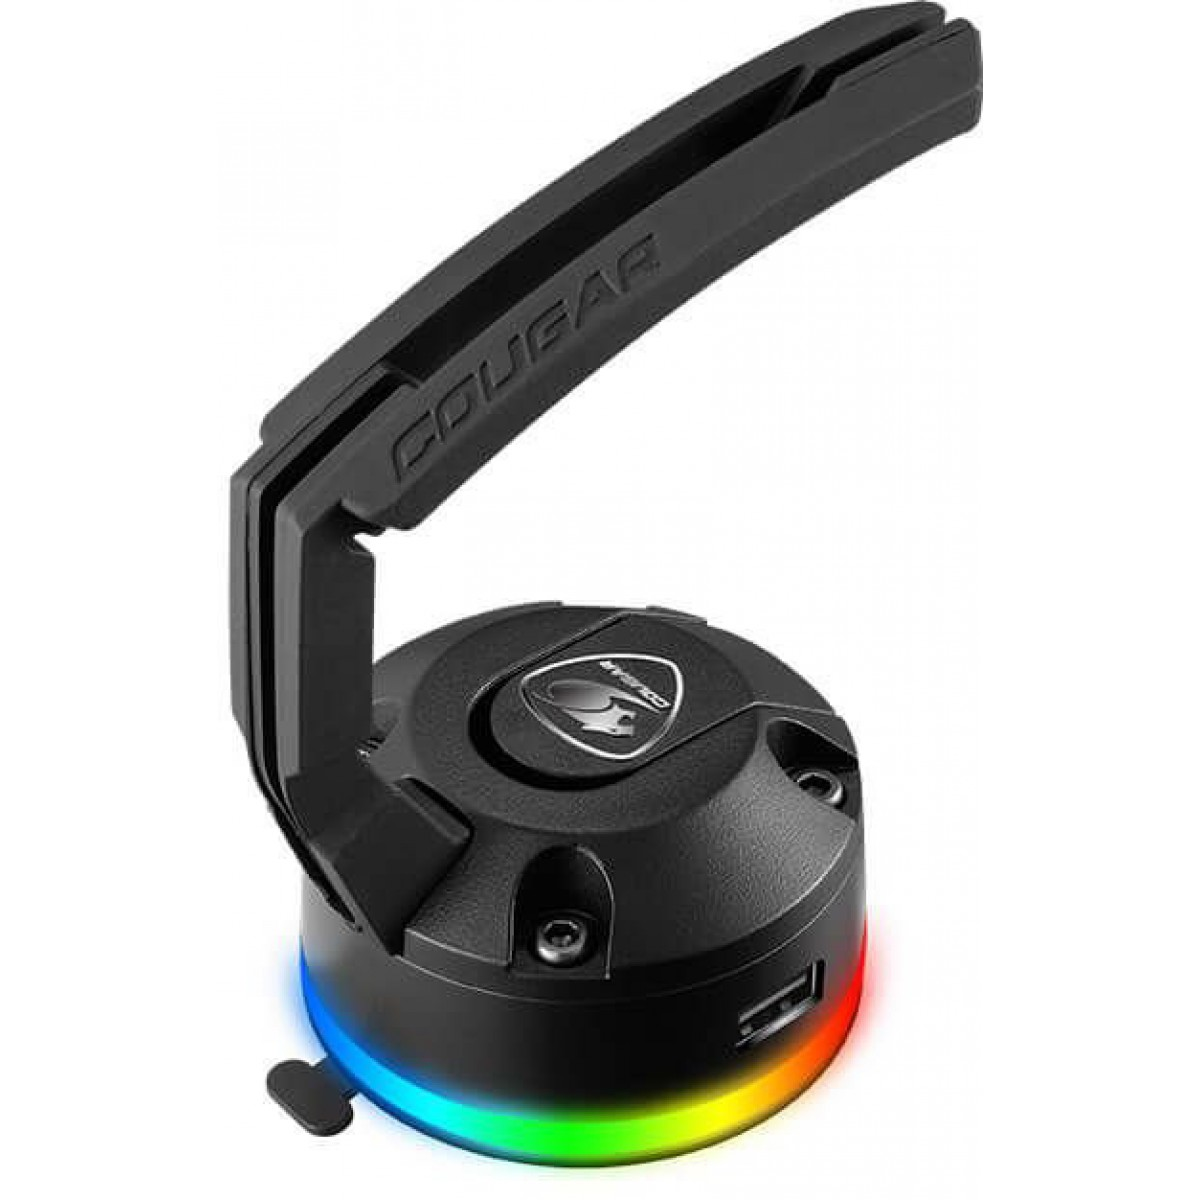 Suporte Mouse Bungee Cougar Bunker, RGB, Black